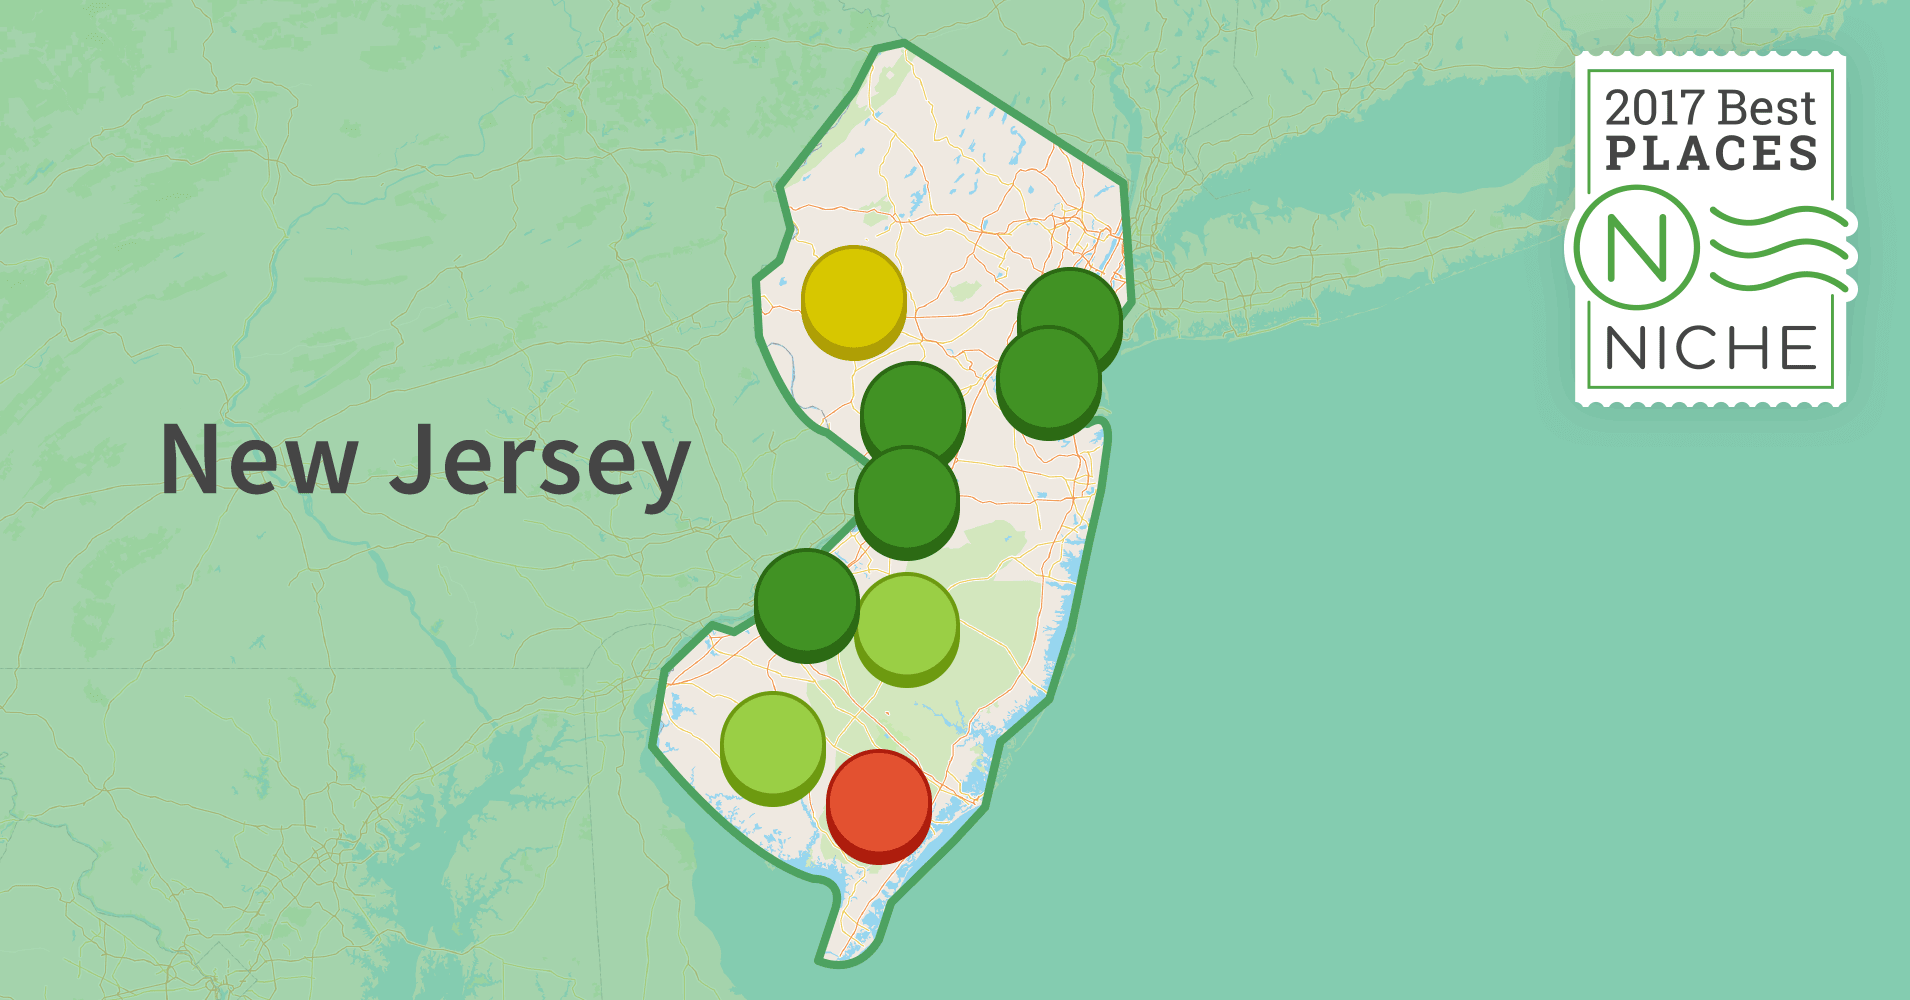 2017 Best Places to Live in New Jersey Niche